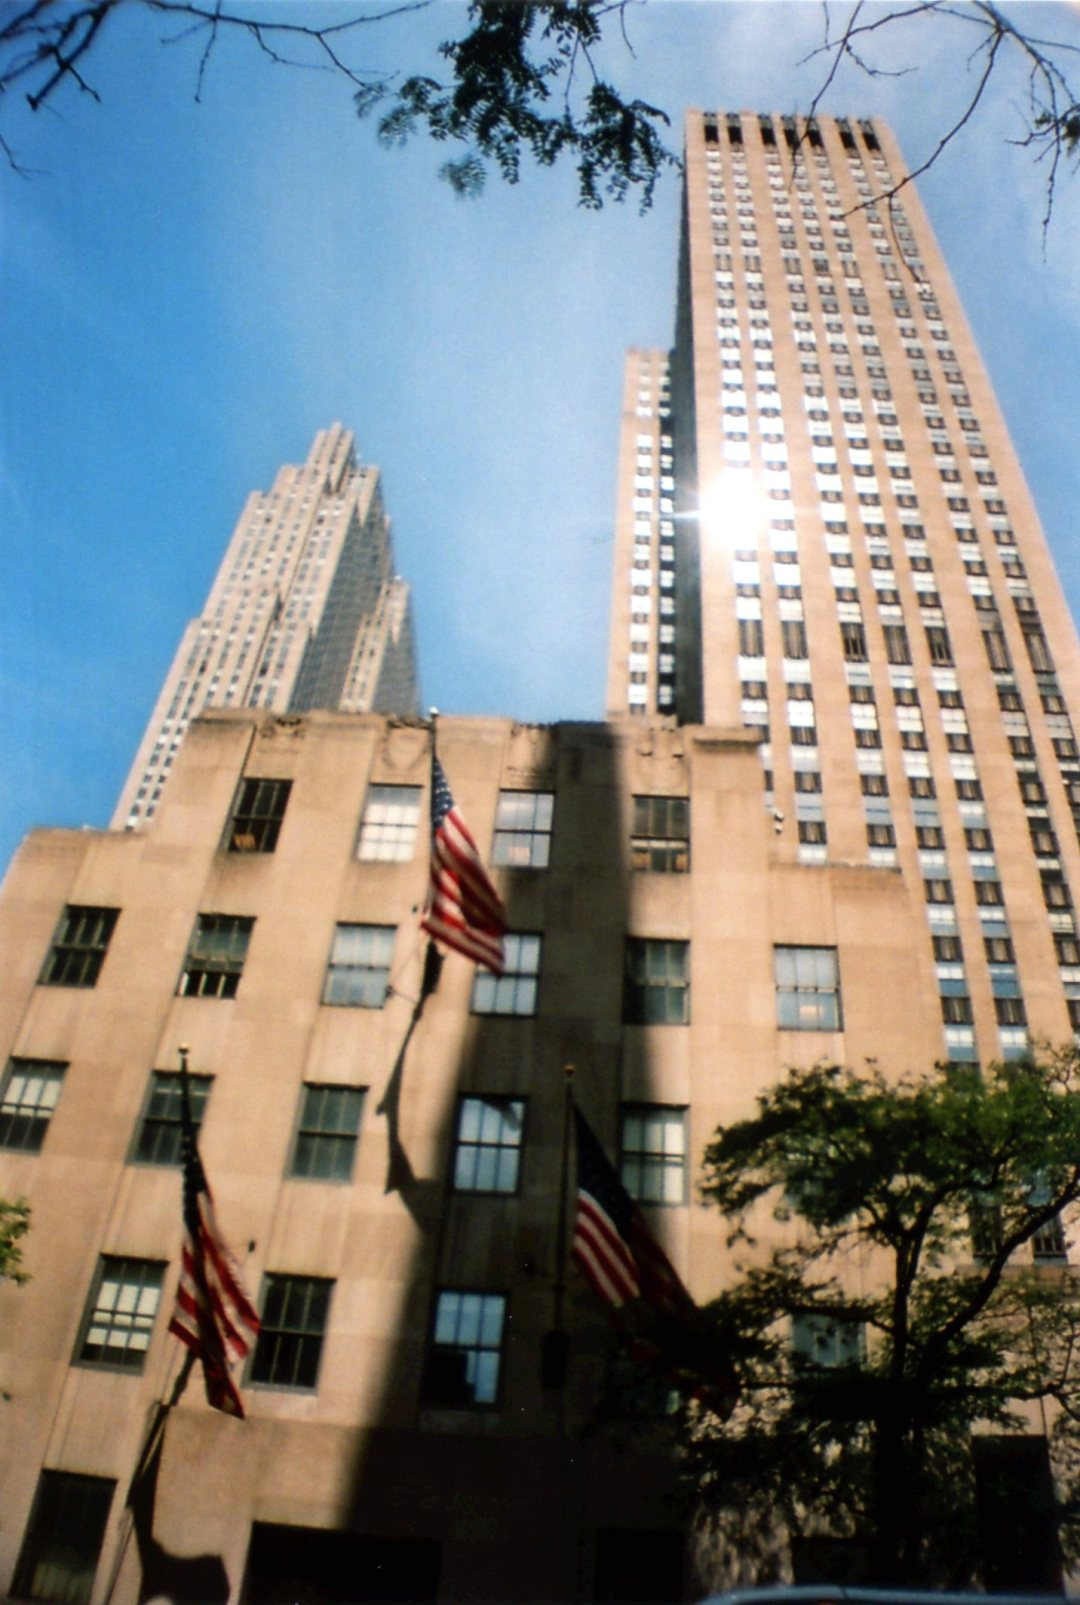 New York buildings sardina